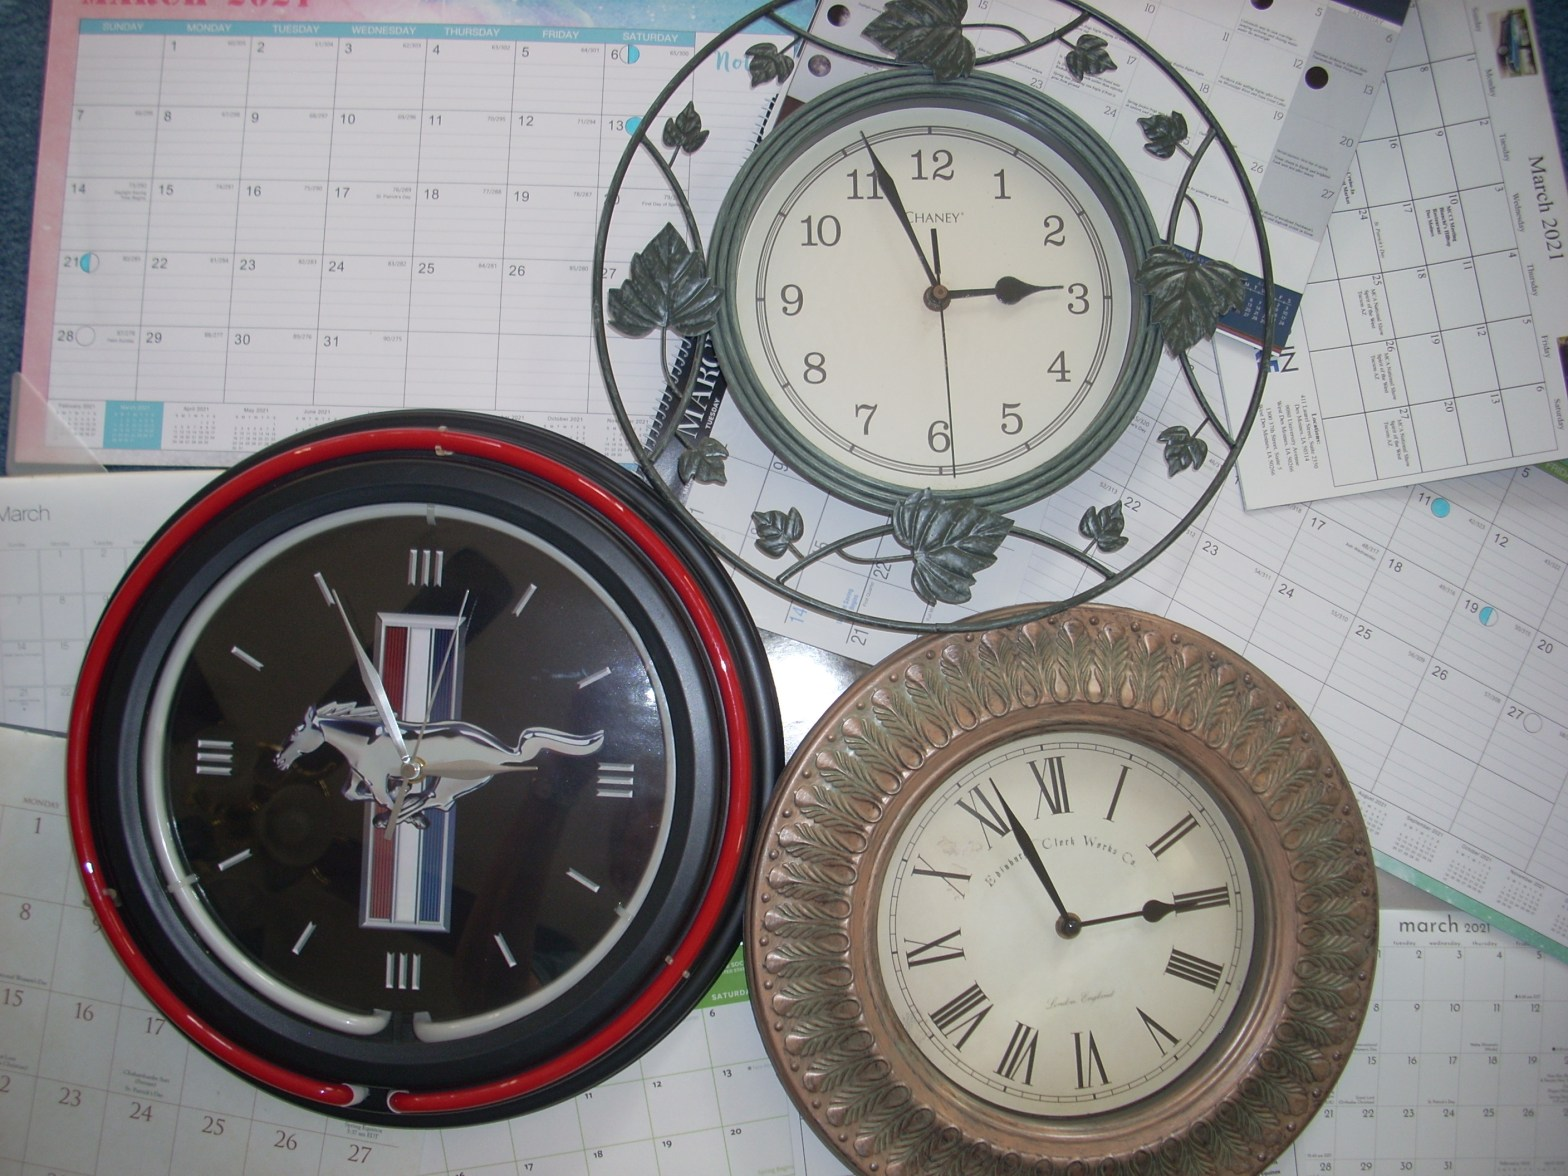 photo of various clocks and calendars